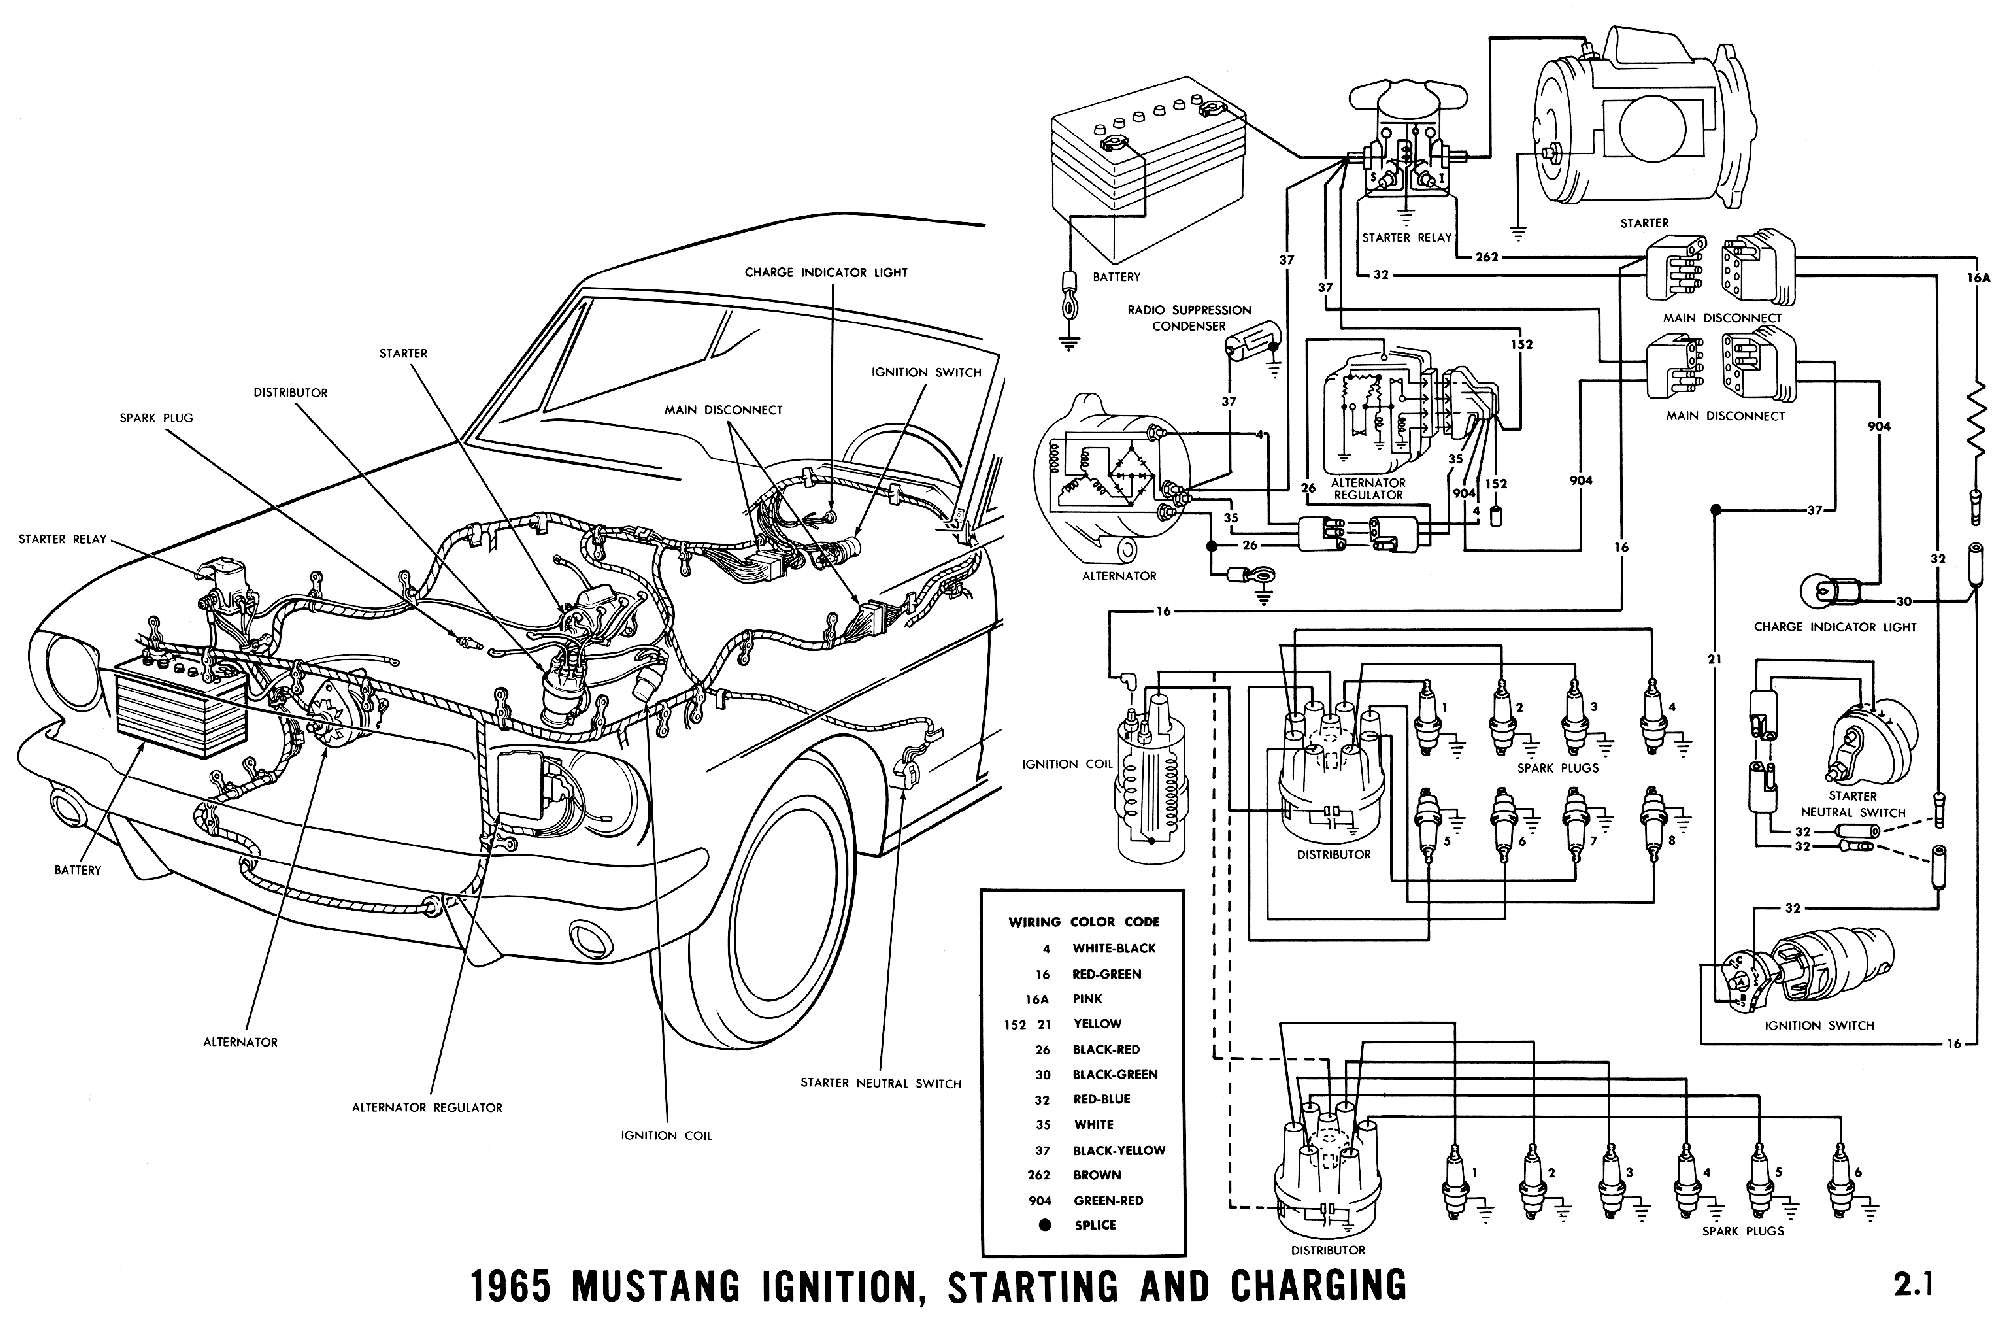 67 Mustang Ignition Wiring Diagram